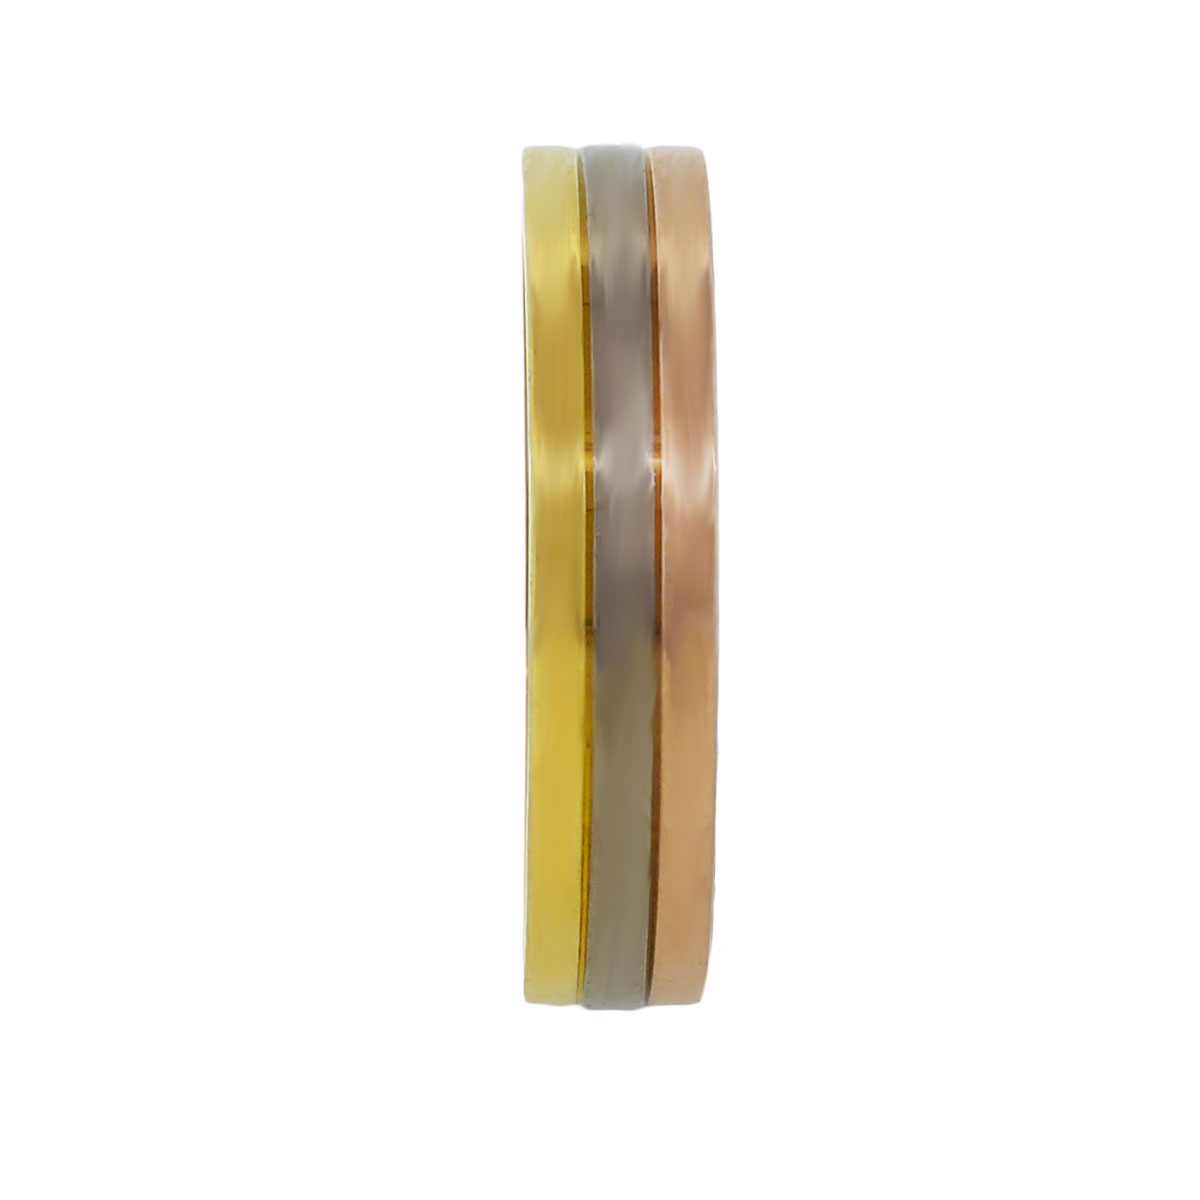 cartier tri color mens wedding band ring cartier wedding band cartier jewelry cartier jewelry cartier jewelry